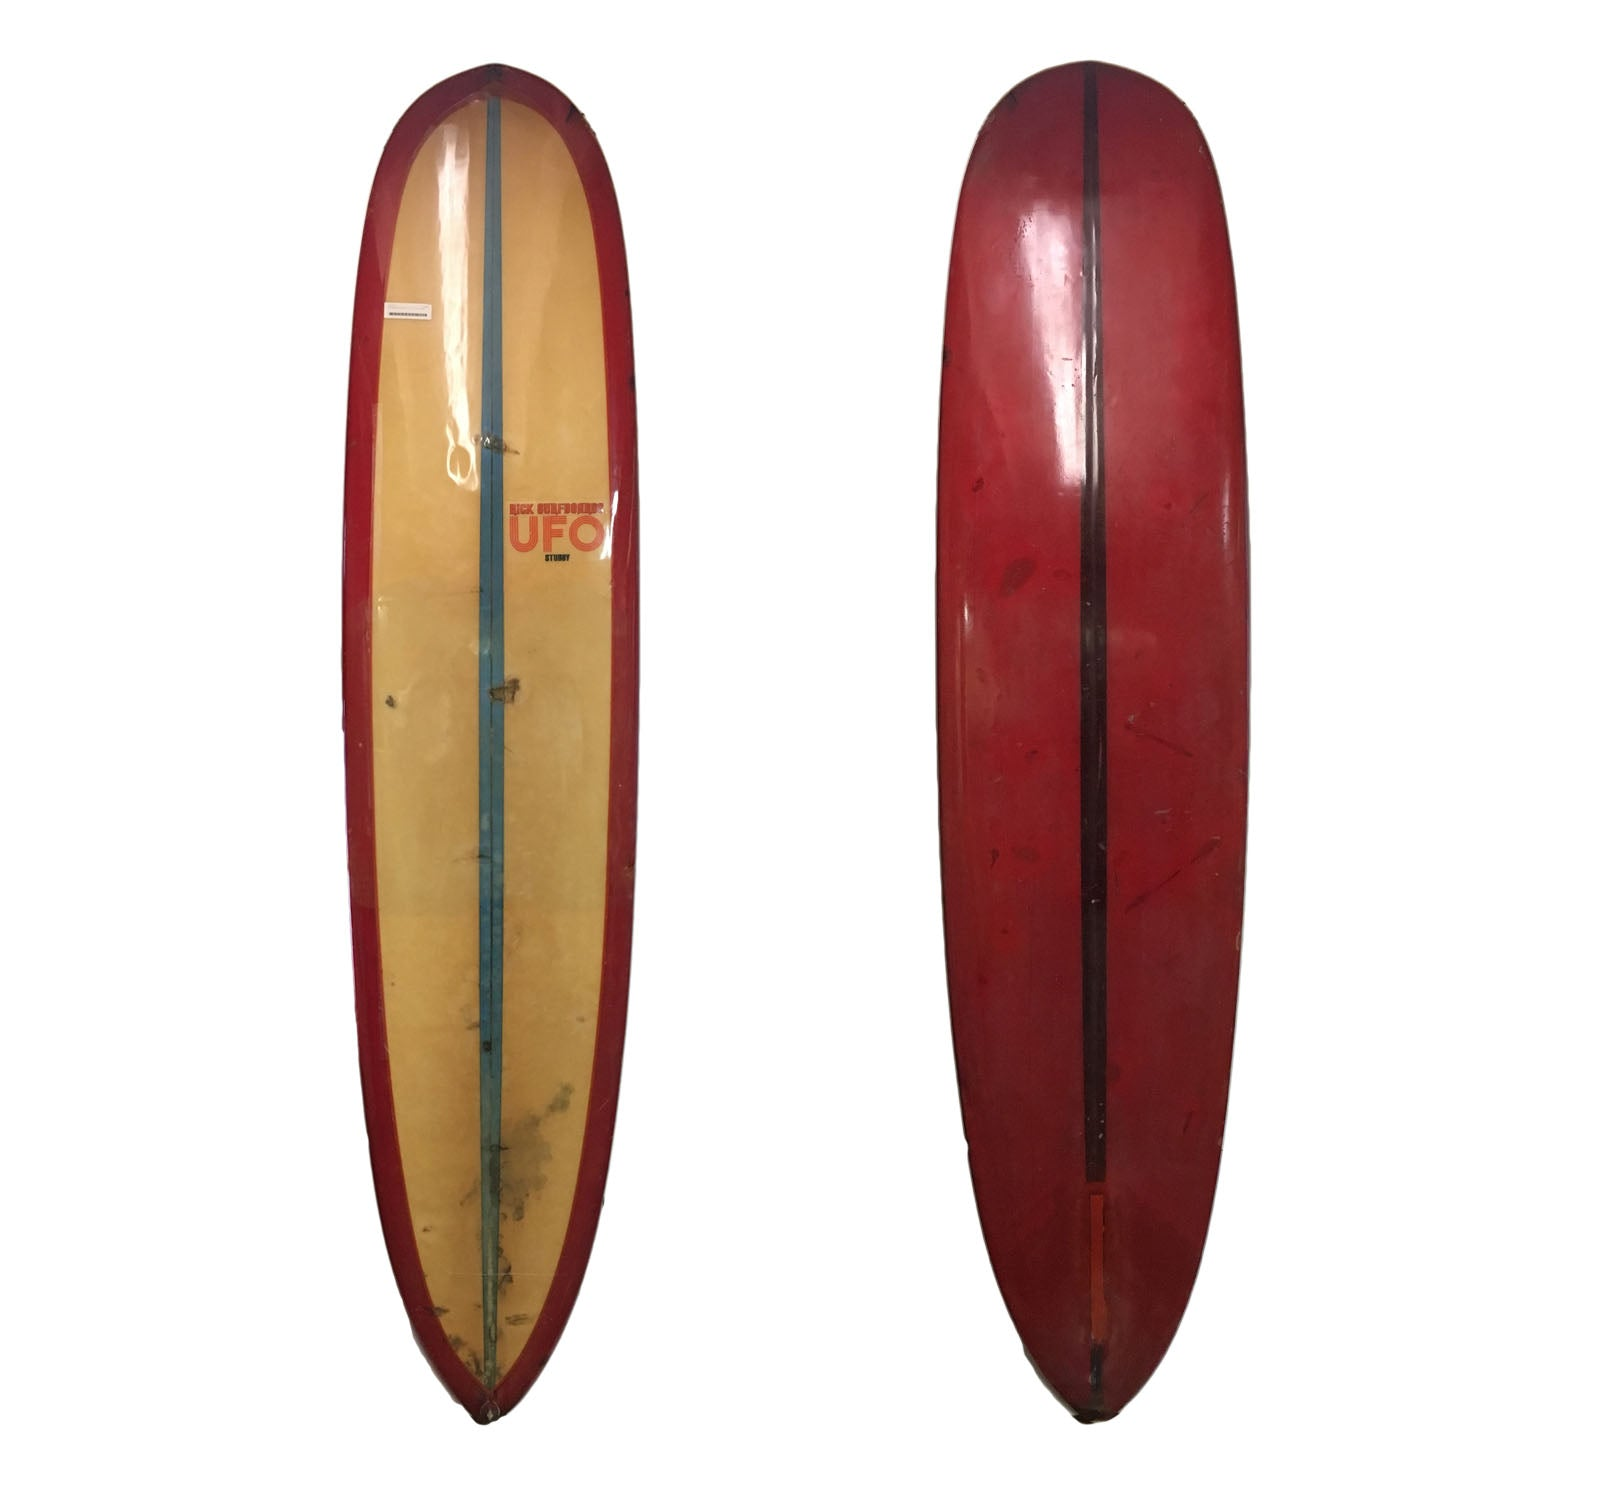 Rick UFO Stubby 8'5 Collector Surfboard